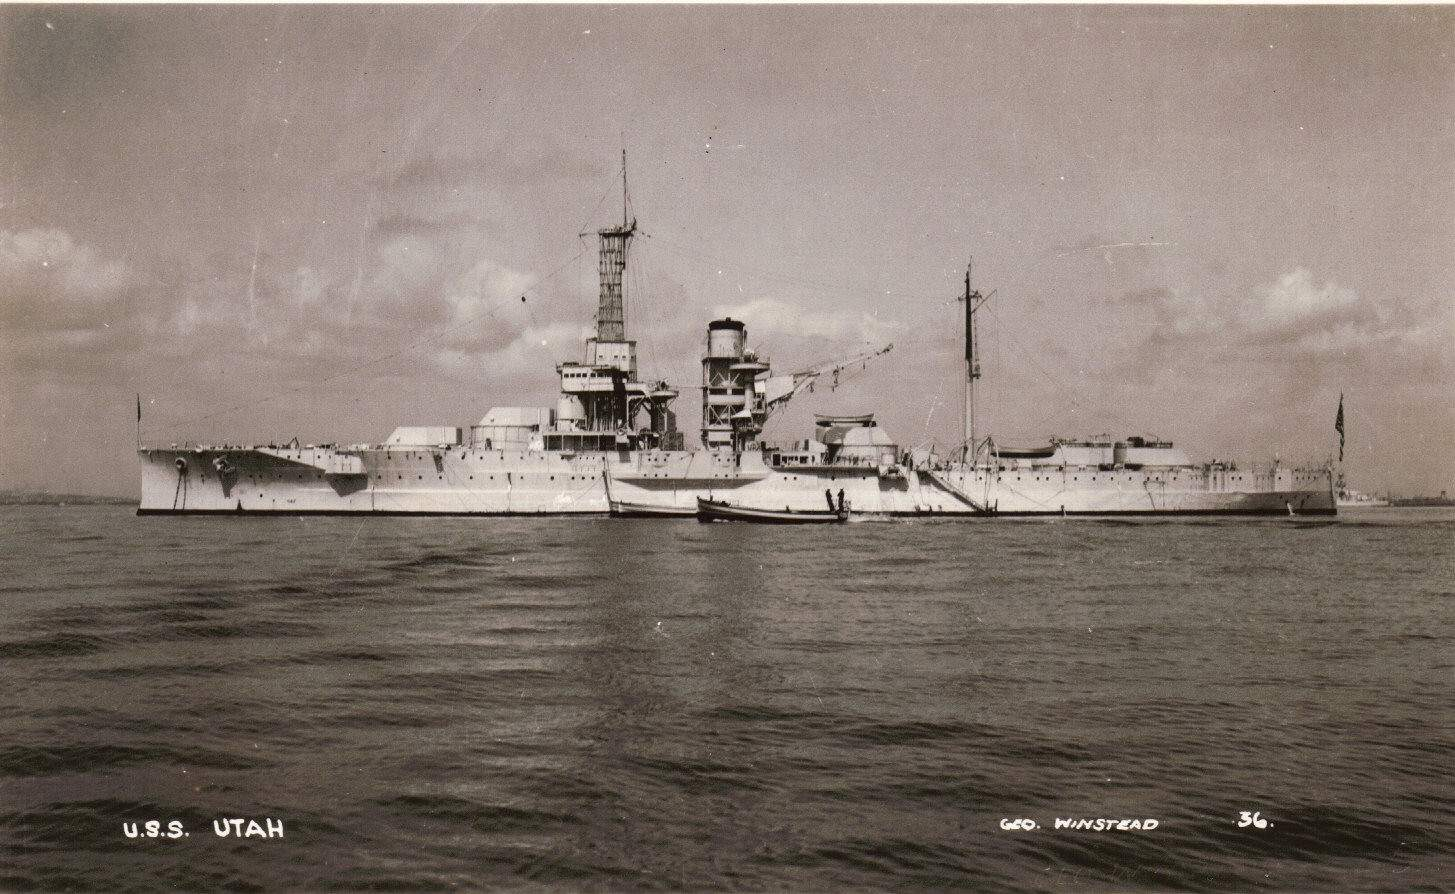 Photographed by George Winstead, probably immediately after her recommissioning on 1 April 1932, when Utah (AG-16) departed Norfolk on to train her engineers in using the new installations and for trials of her radio gear by which the ship could be controlled at varying rates of speed and changes of course maneuvers that a ship would conduct in battle. Her electric motors, operated by signals from the controlling ship, opened and closed throttle valves, moved her steering gear, and regulated the supply of oil to her boilers. In addition, a Sperry gyro pilot kept the ship on course. USN photo courtesy of Robert M. Cieri. Text courtesy of DANFS. Via Navsource